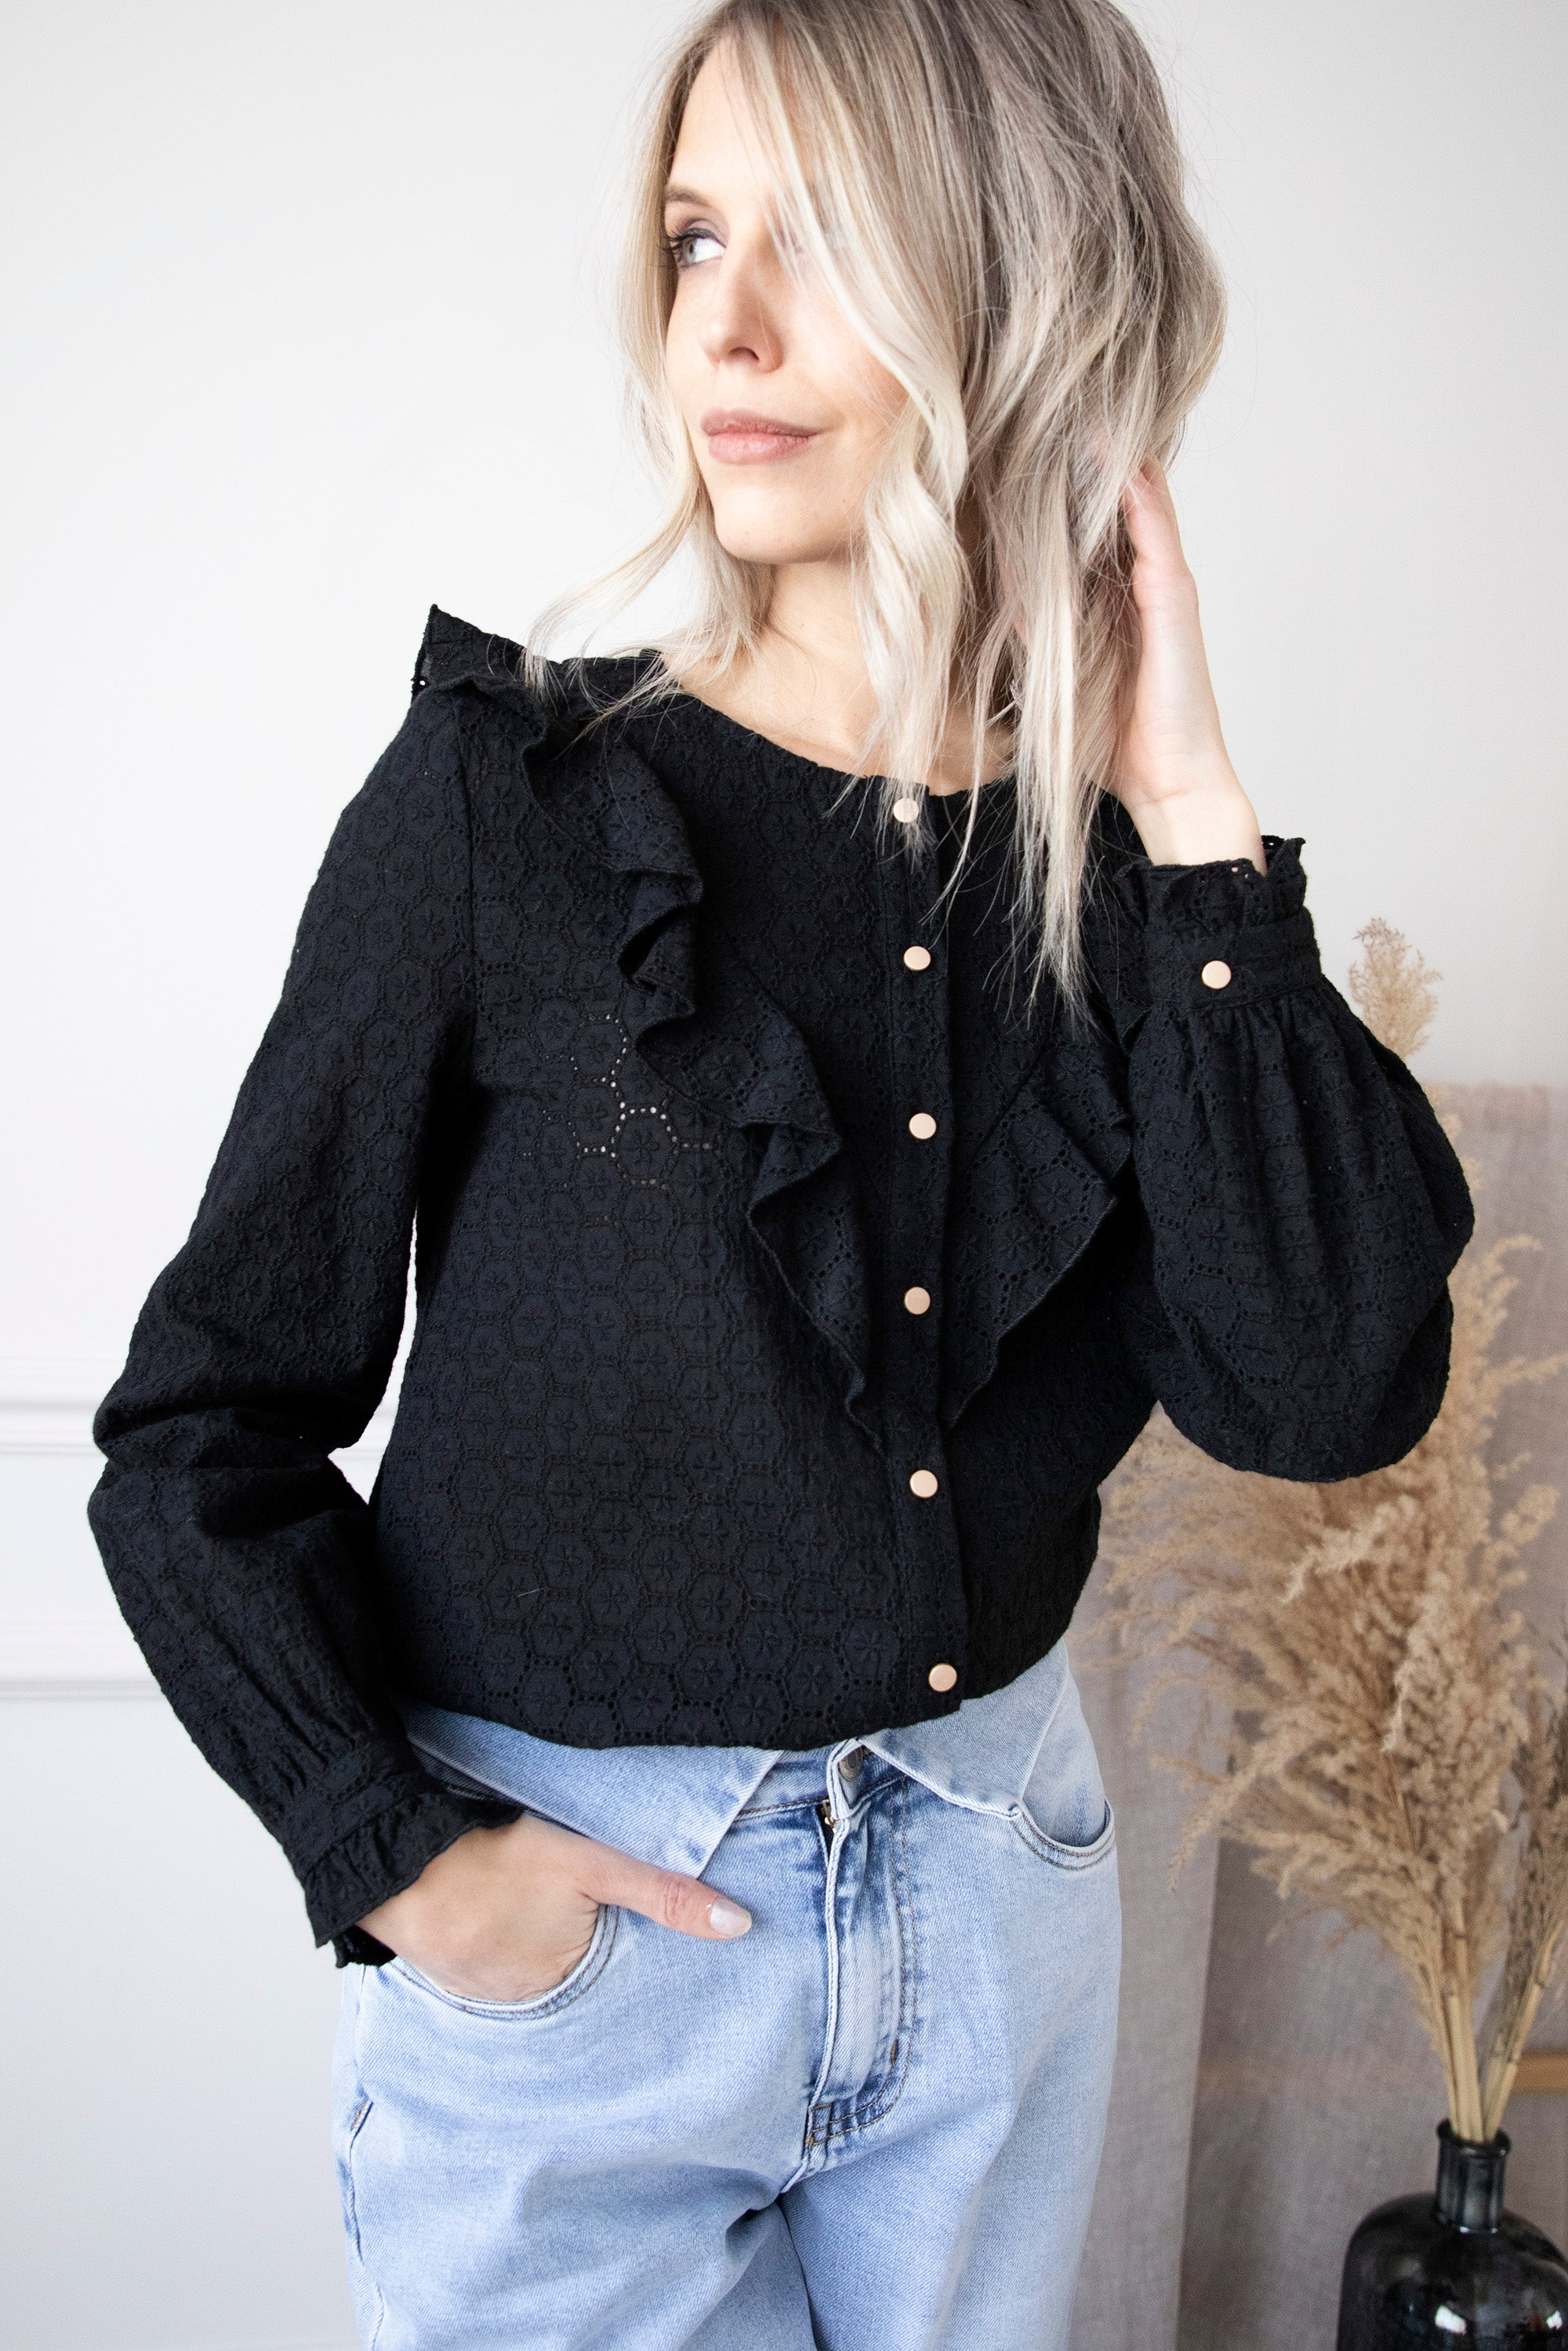 Bloomy Embroidery Black - Blouse